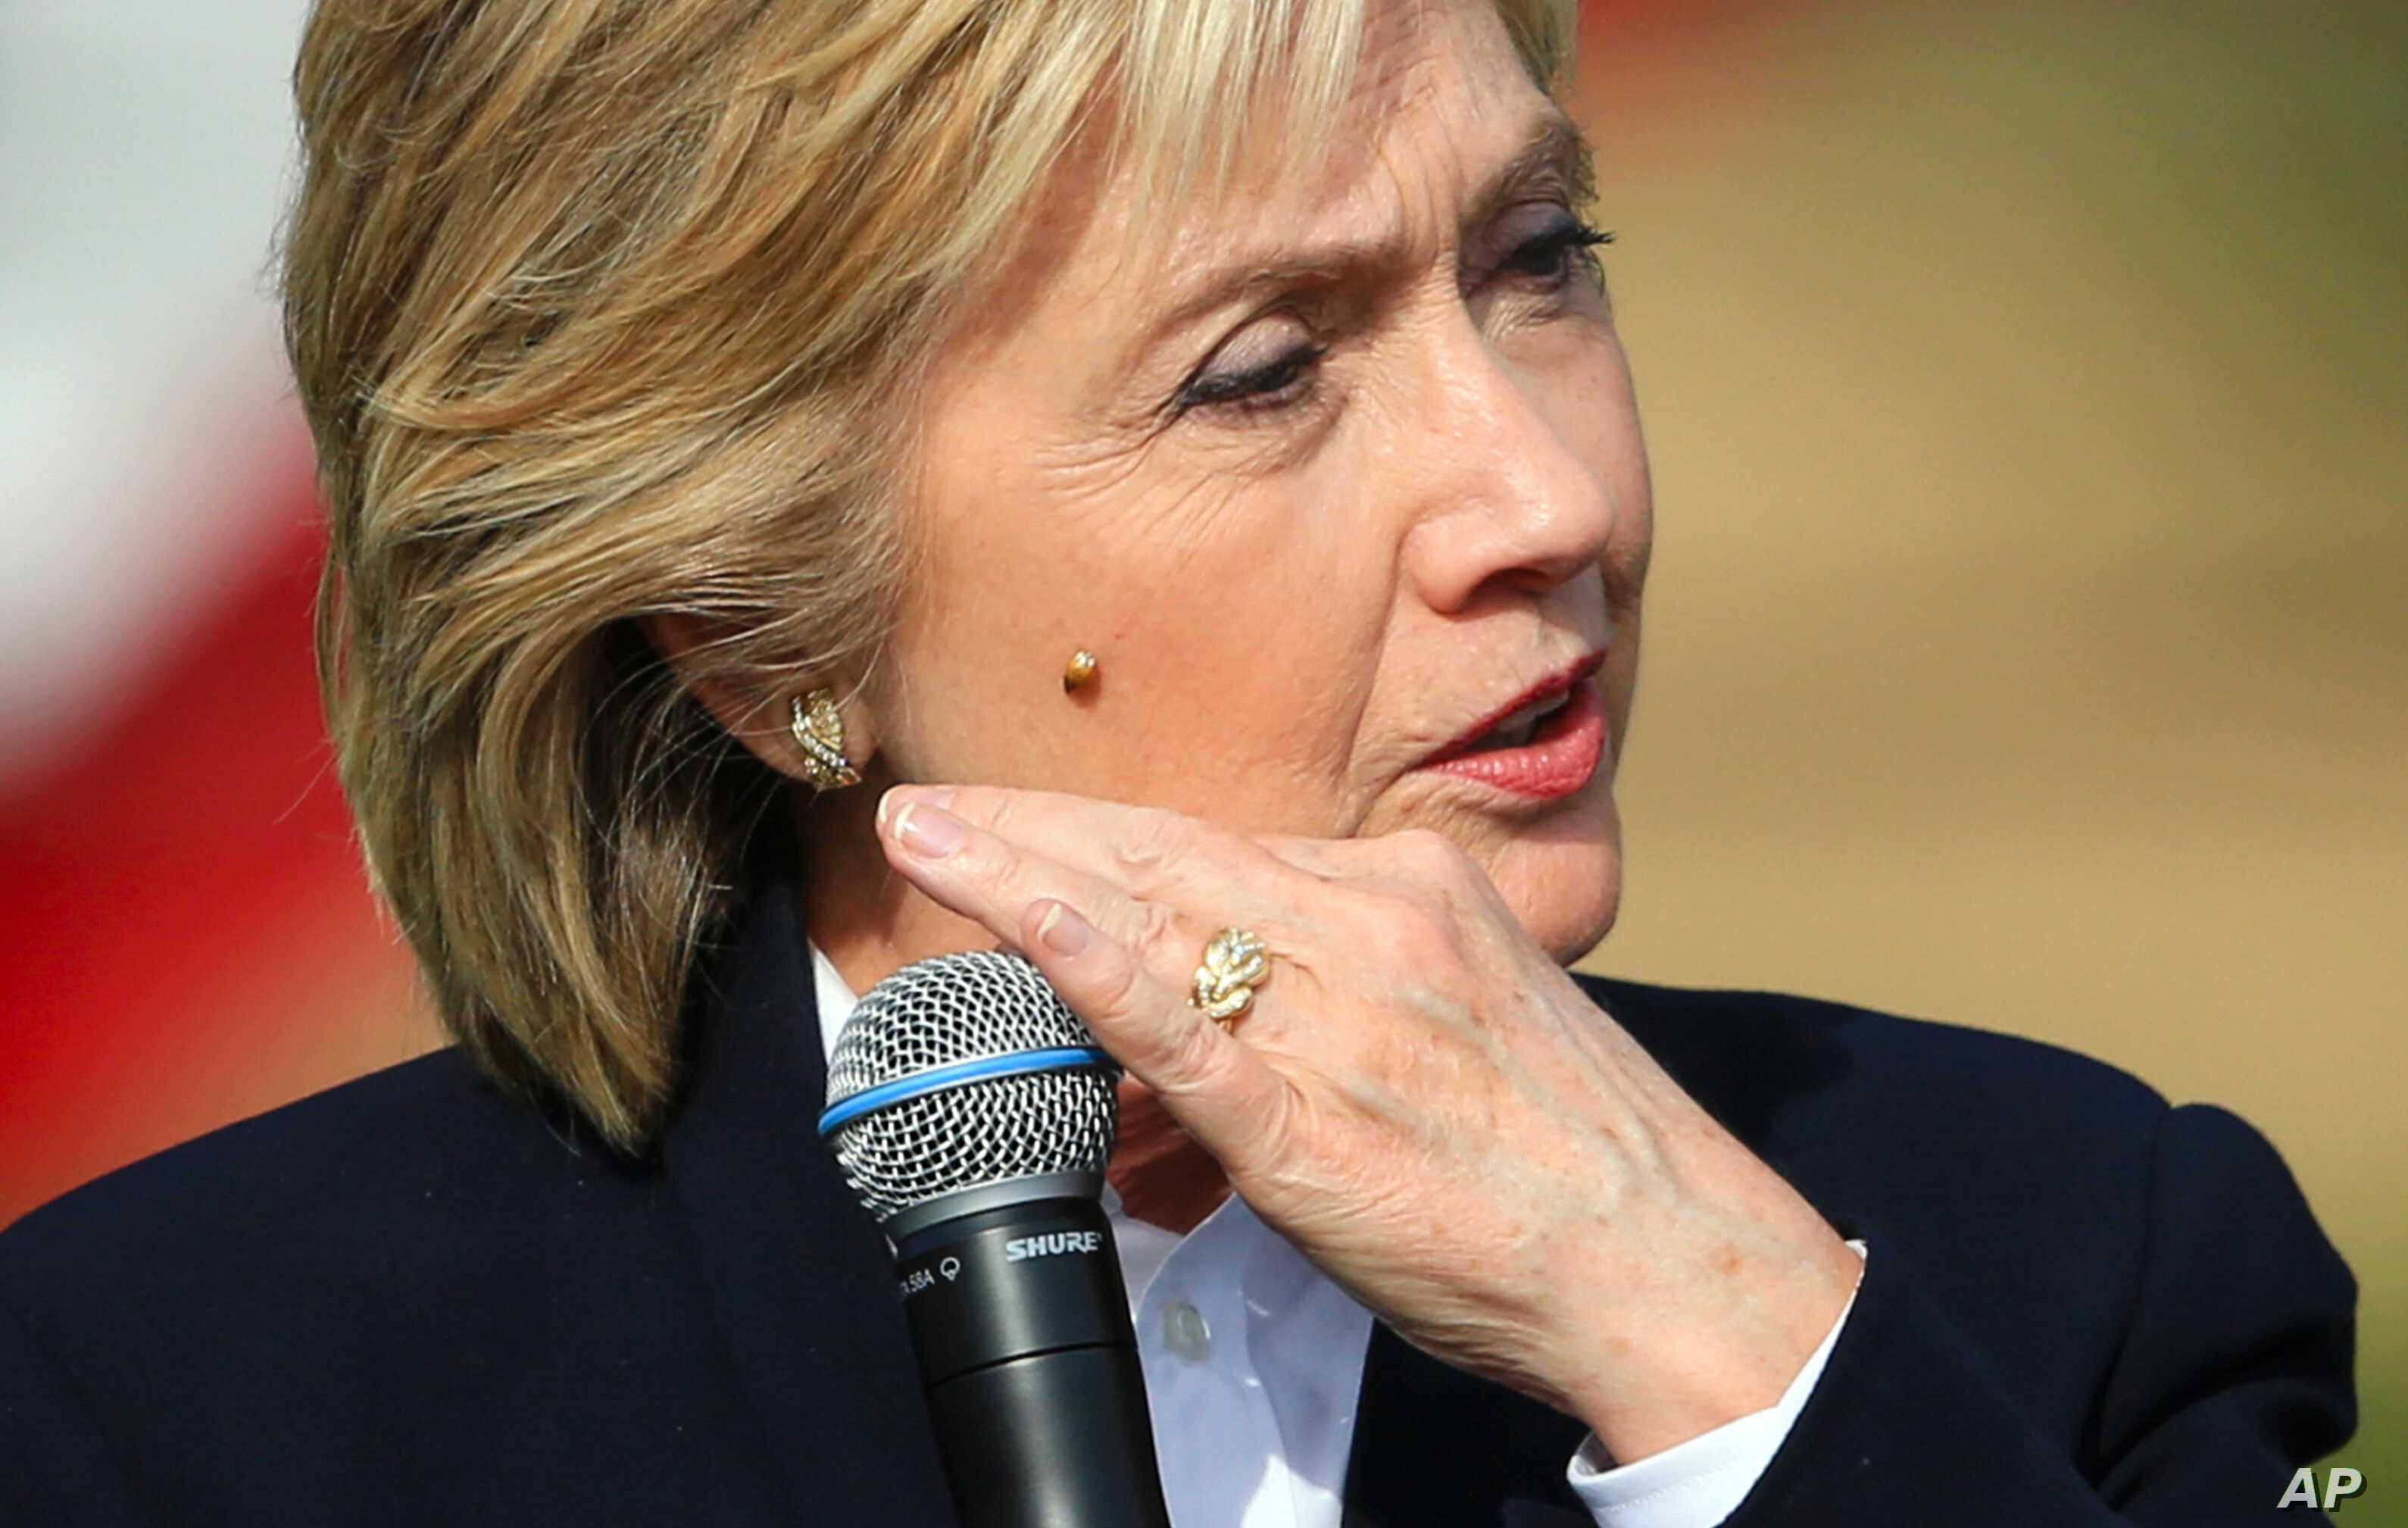 Democratic presidential candidate Hillary Rodham Clinton brushes off a lady bug that landed on her as she speaks Wednesday, Oct. 7, 2015, during a campaign stop at the Westfair Amphitheater in Council Bluffs, Iowa.